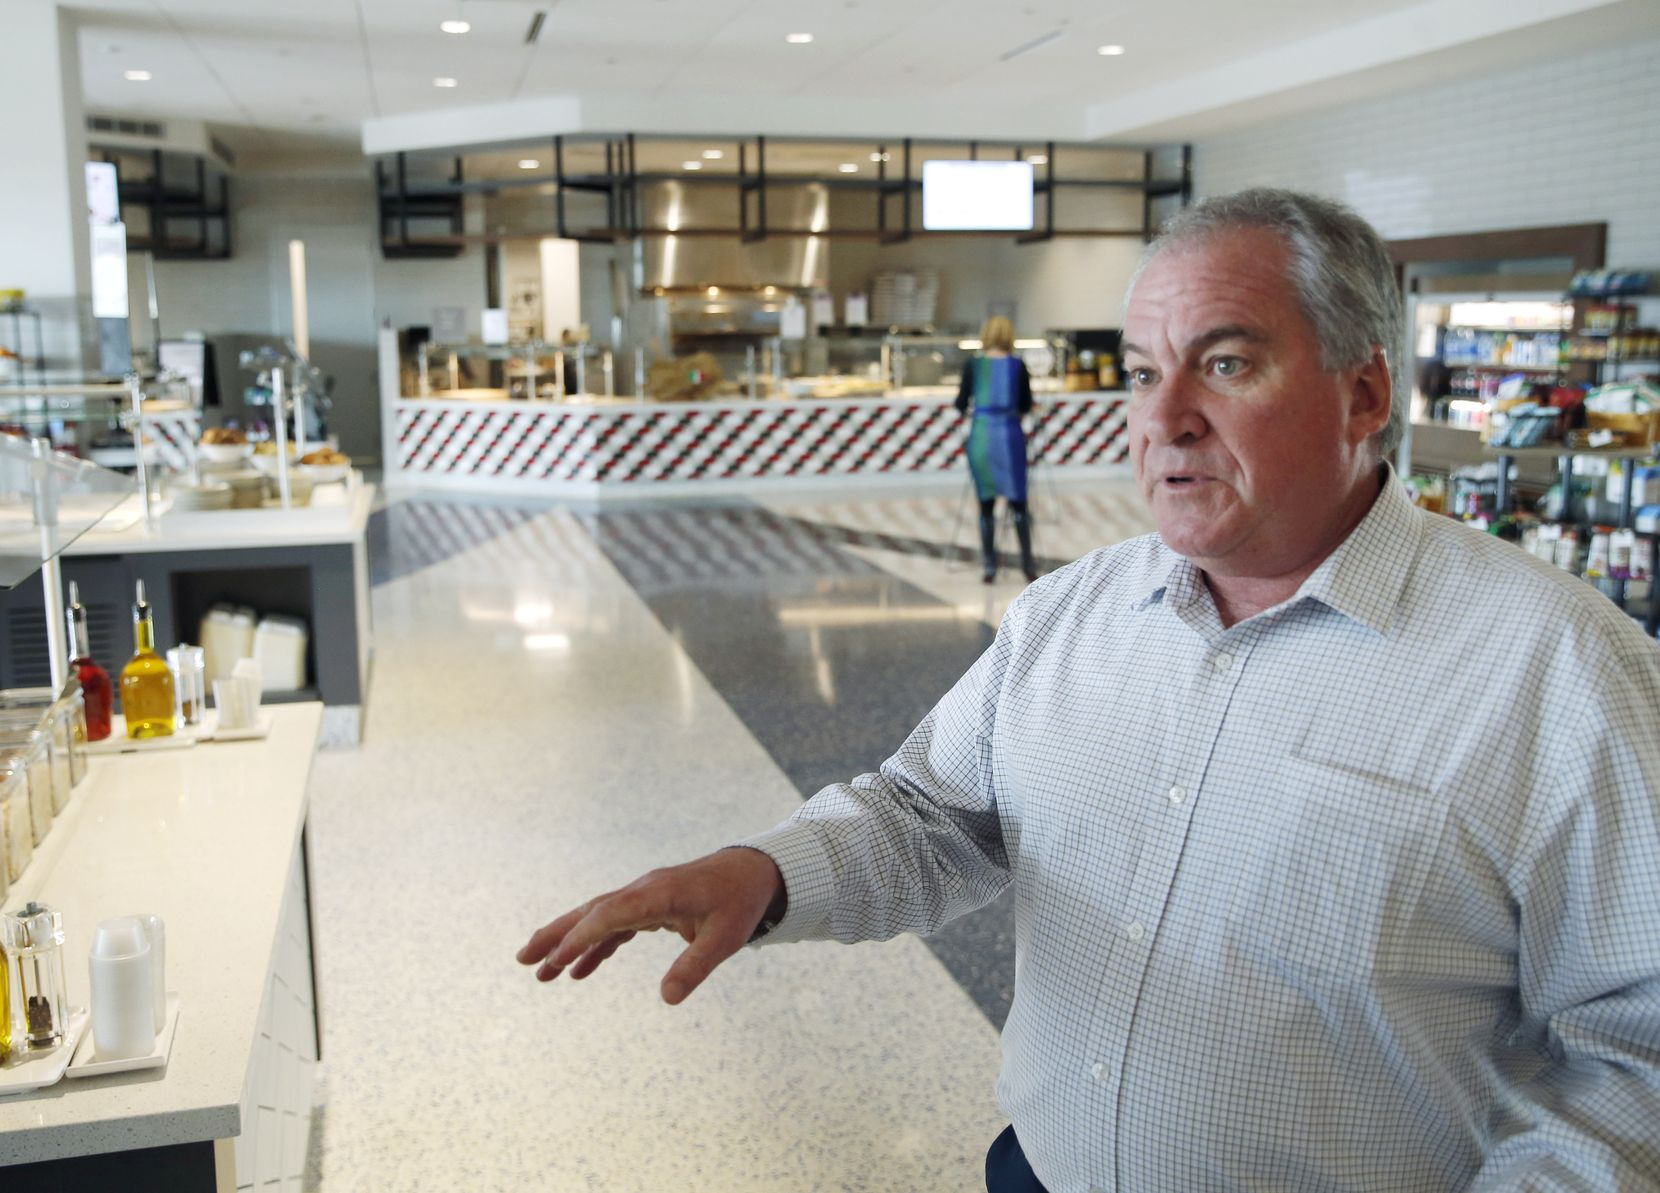 Glenn Cooper of Charles Schwab gives a tour of the new Charles Schwab headquarters in Westlake.